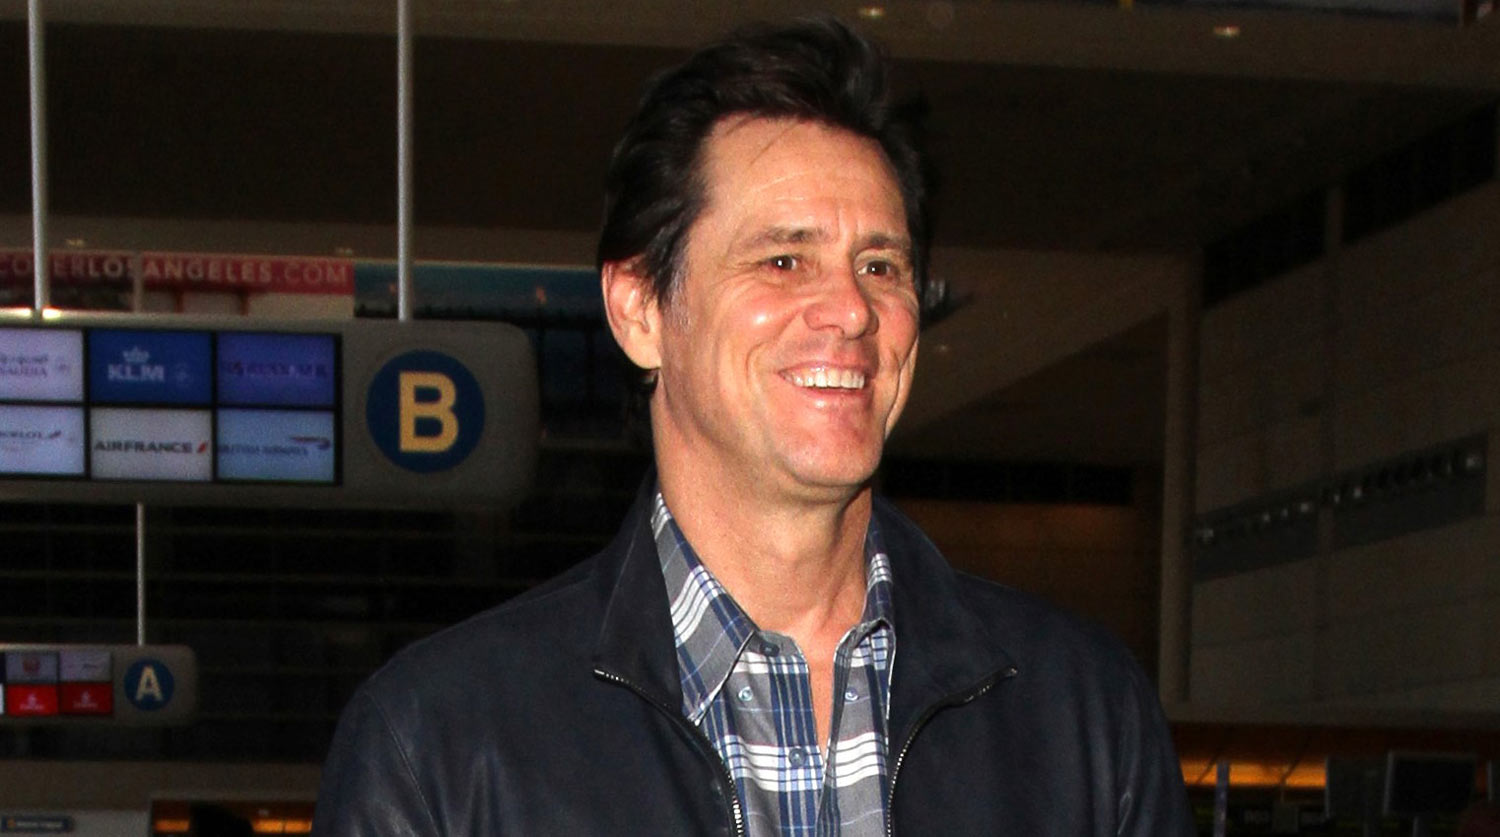 Jim Carrey is All Smiles As He Walks Through LAX Airport